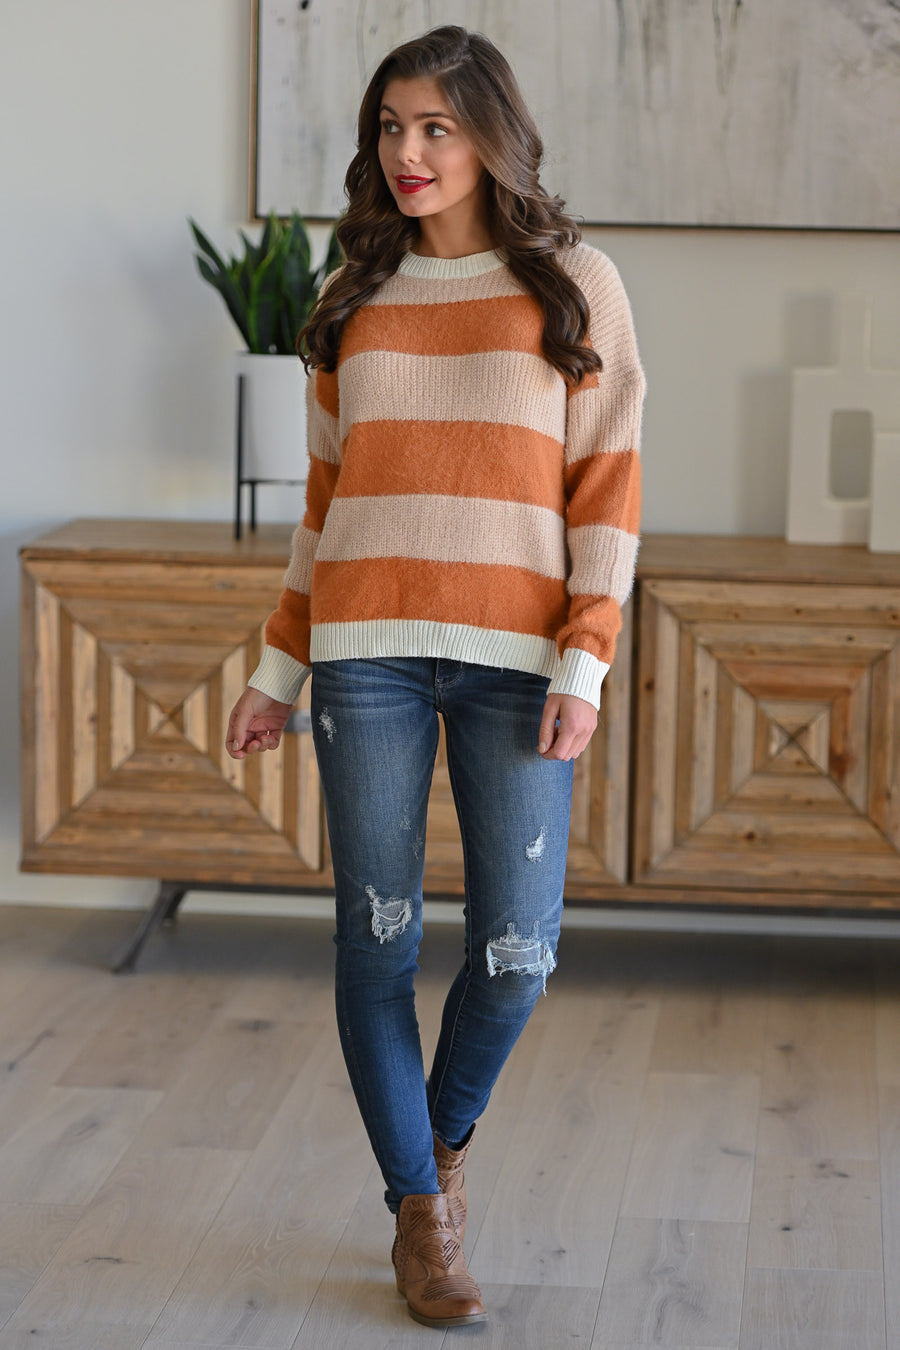 Hold On Tight Striped Sweater - Apricot women's stripe print color block top, Closet Candy Boutique 1